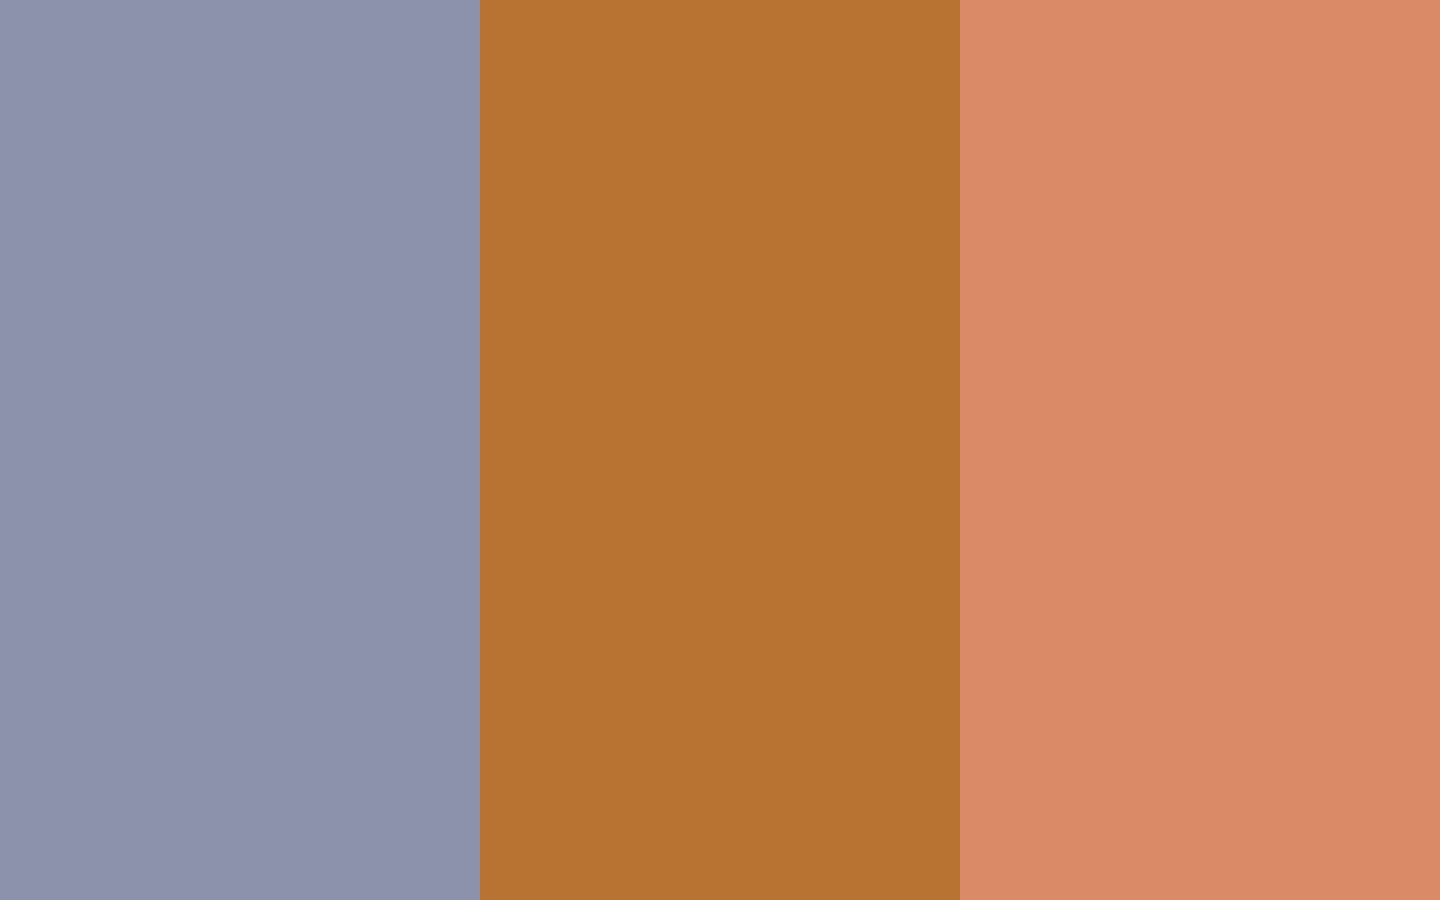 Cool Grey Copper and Copper Crayola solid three color background 1440x900